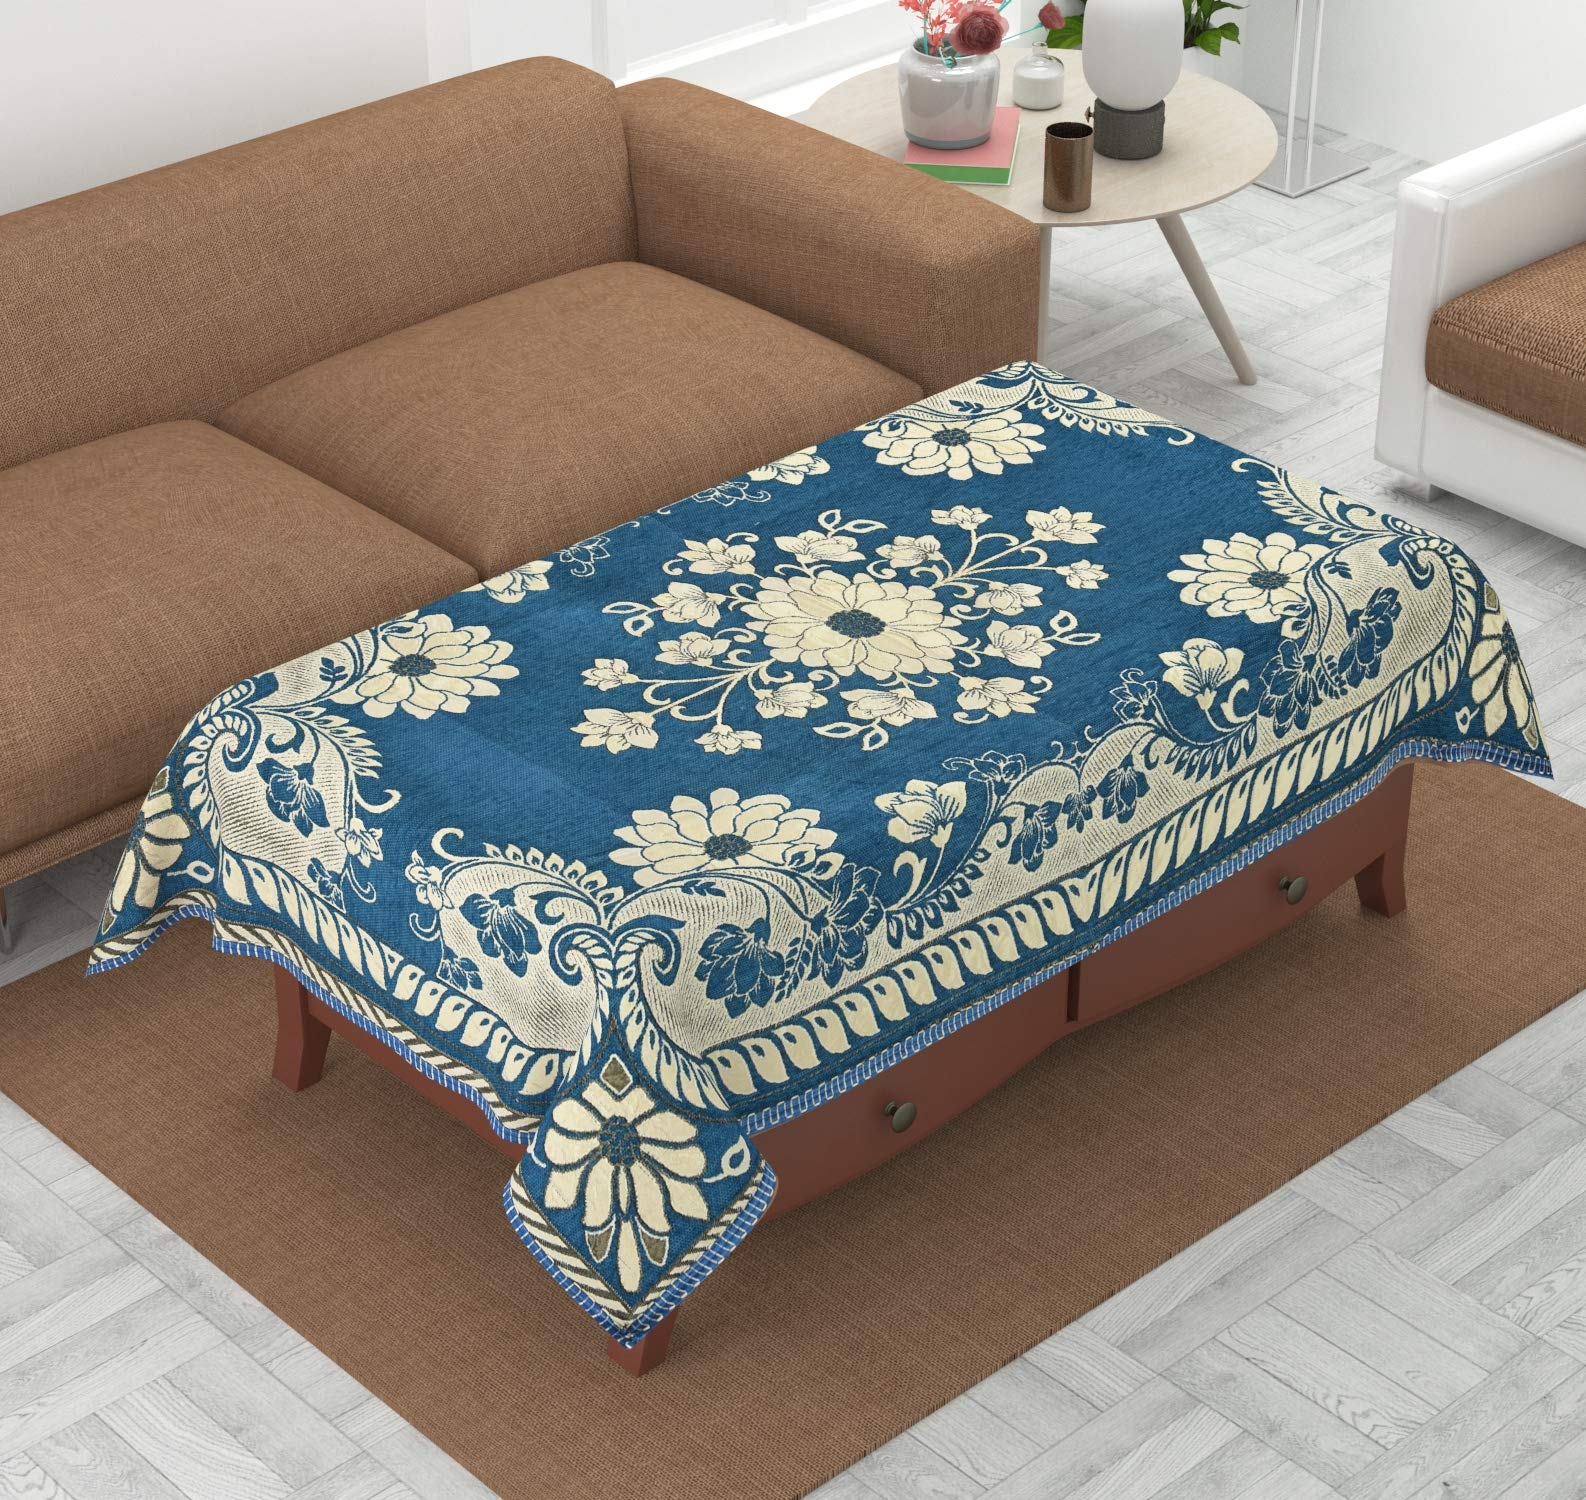 Luxury CraftsTM Luxurious Attractive Design Chenille 4 Seater Centre Table Cover (Sky Blue) (B07WYP4M52) Amazon Price History, Amazon Price Tracker